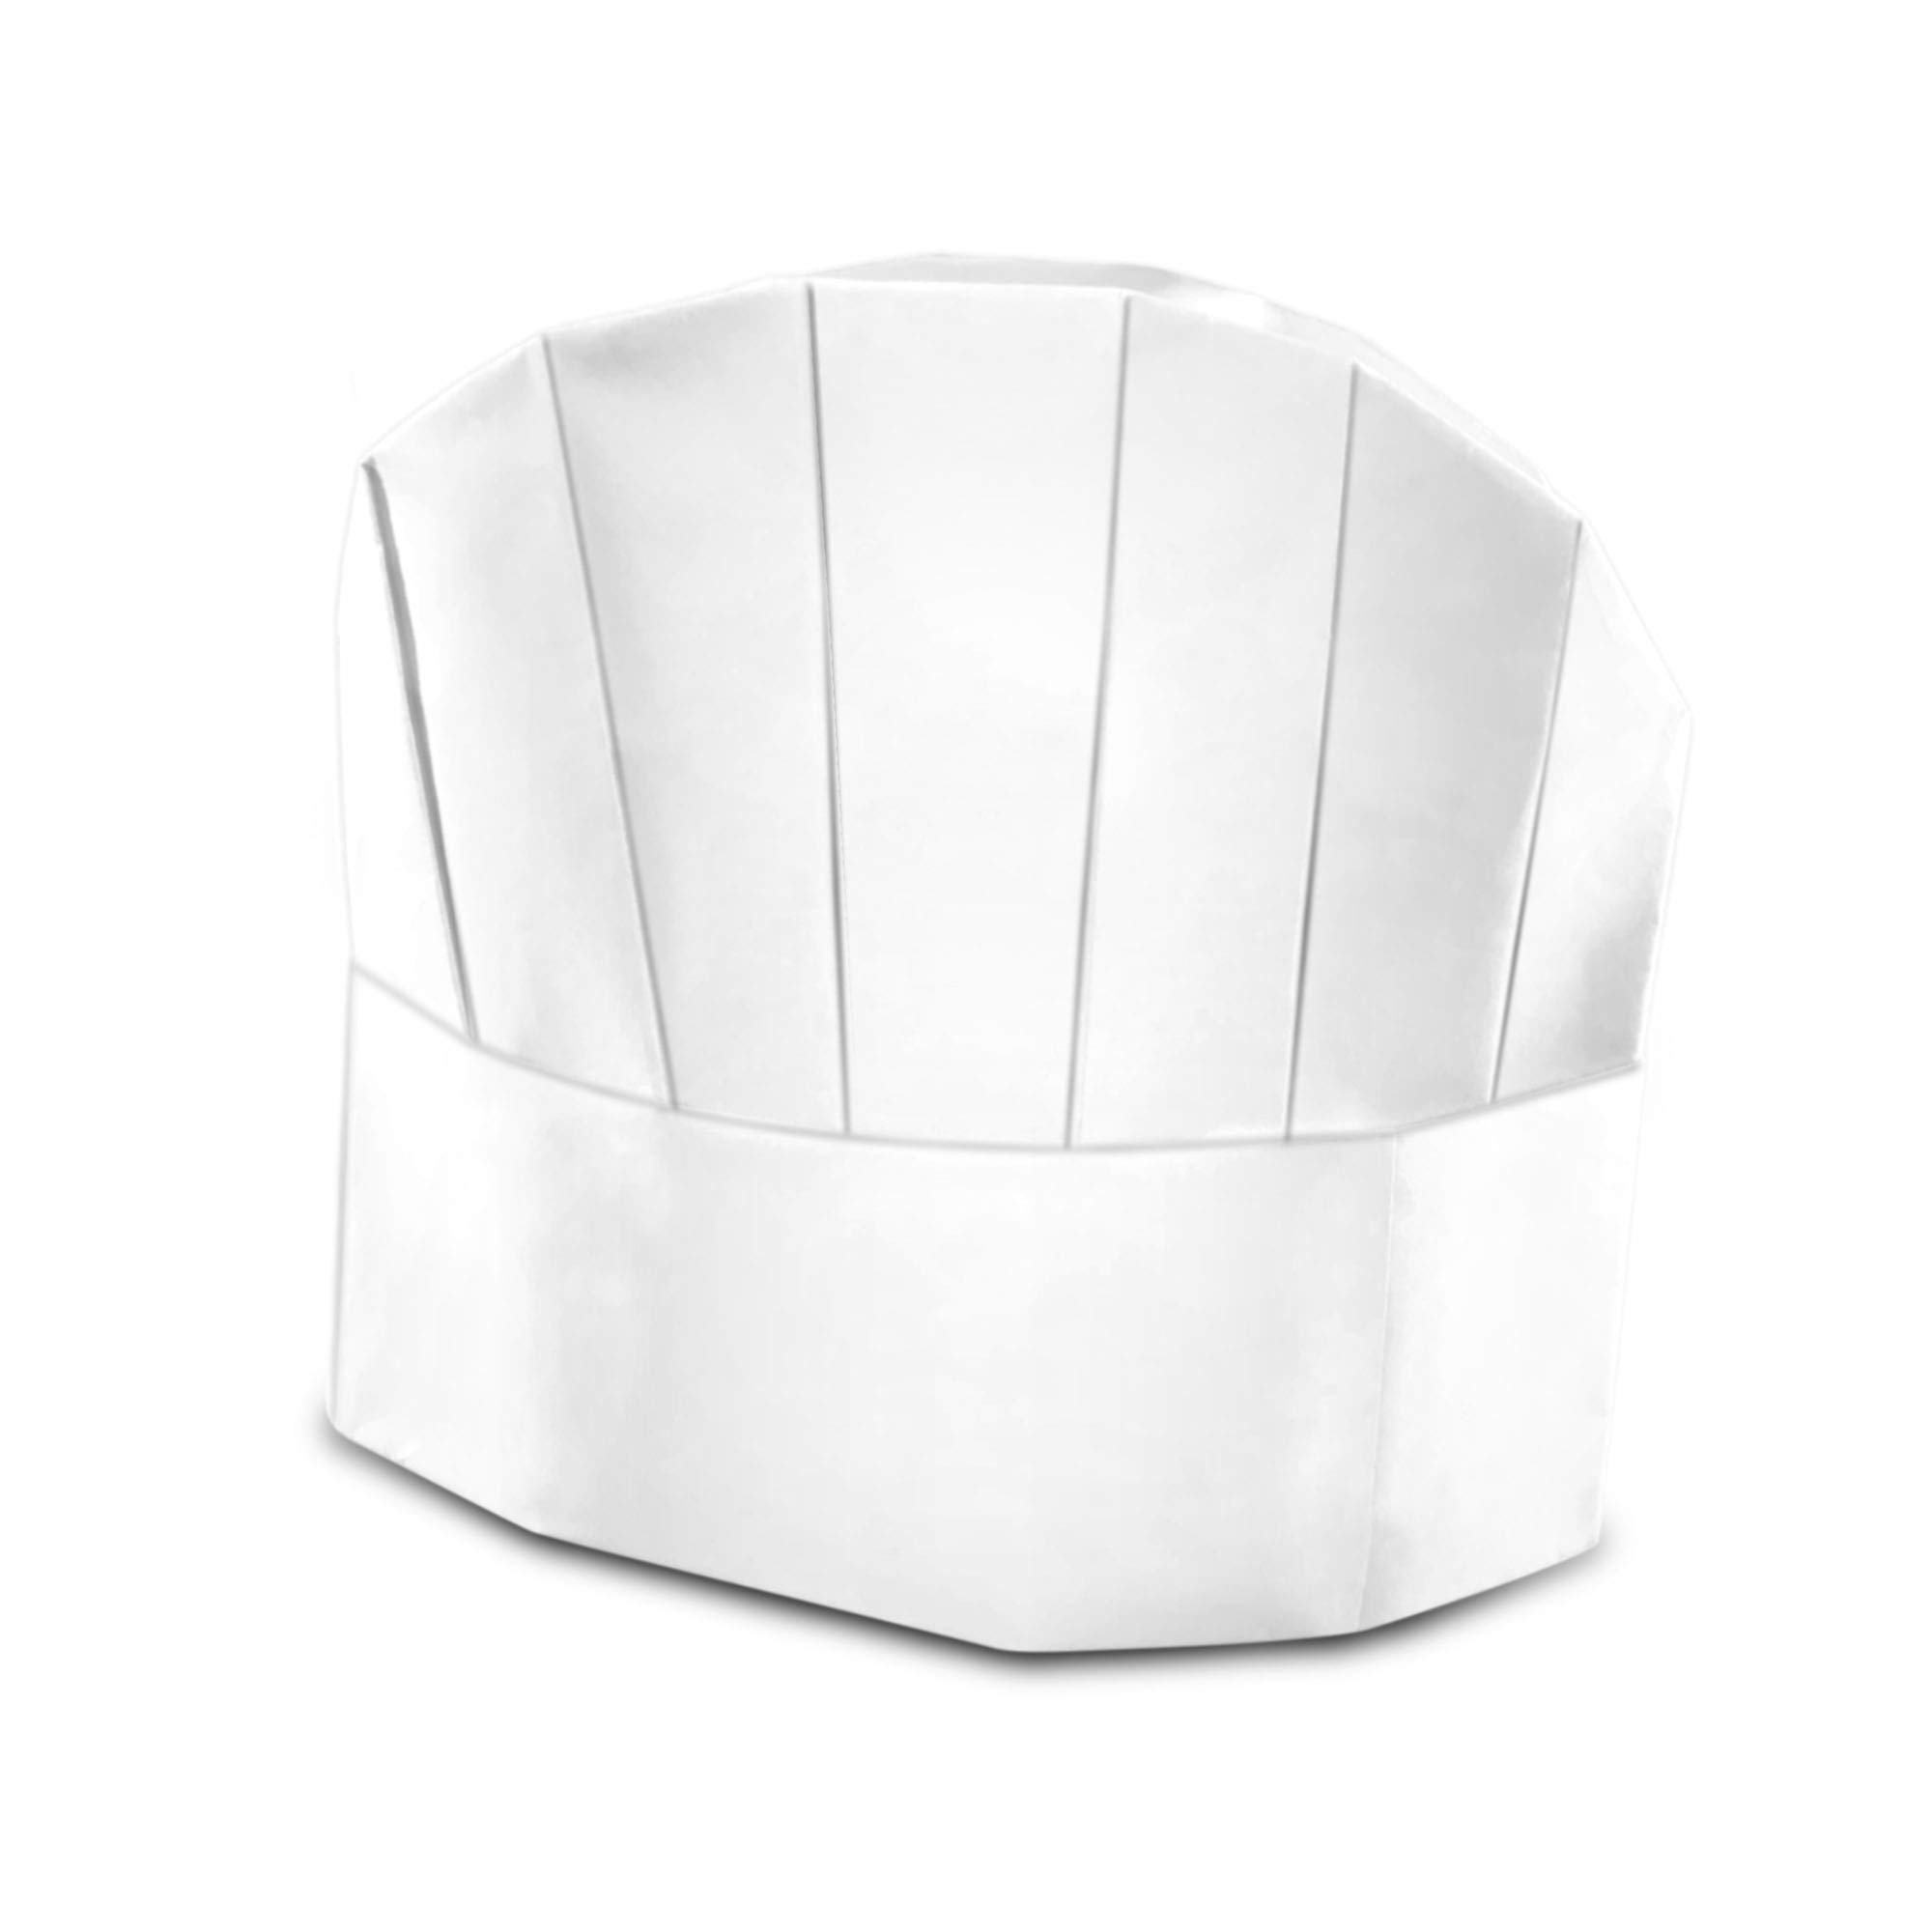 Berkshire Kitchens - 25 Disposable Chefs Hats. Adjustable White Paper Chef Hats for Kids and Adults! Perfect for Cooking Parties! Includes Free Recipe E-Book!